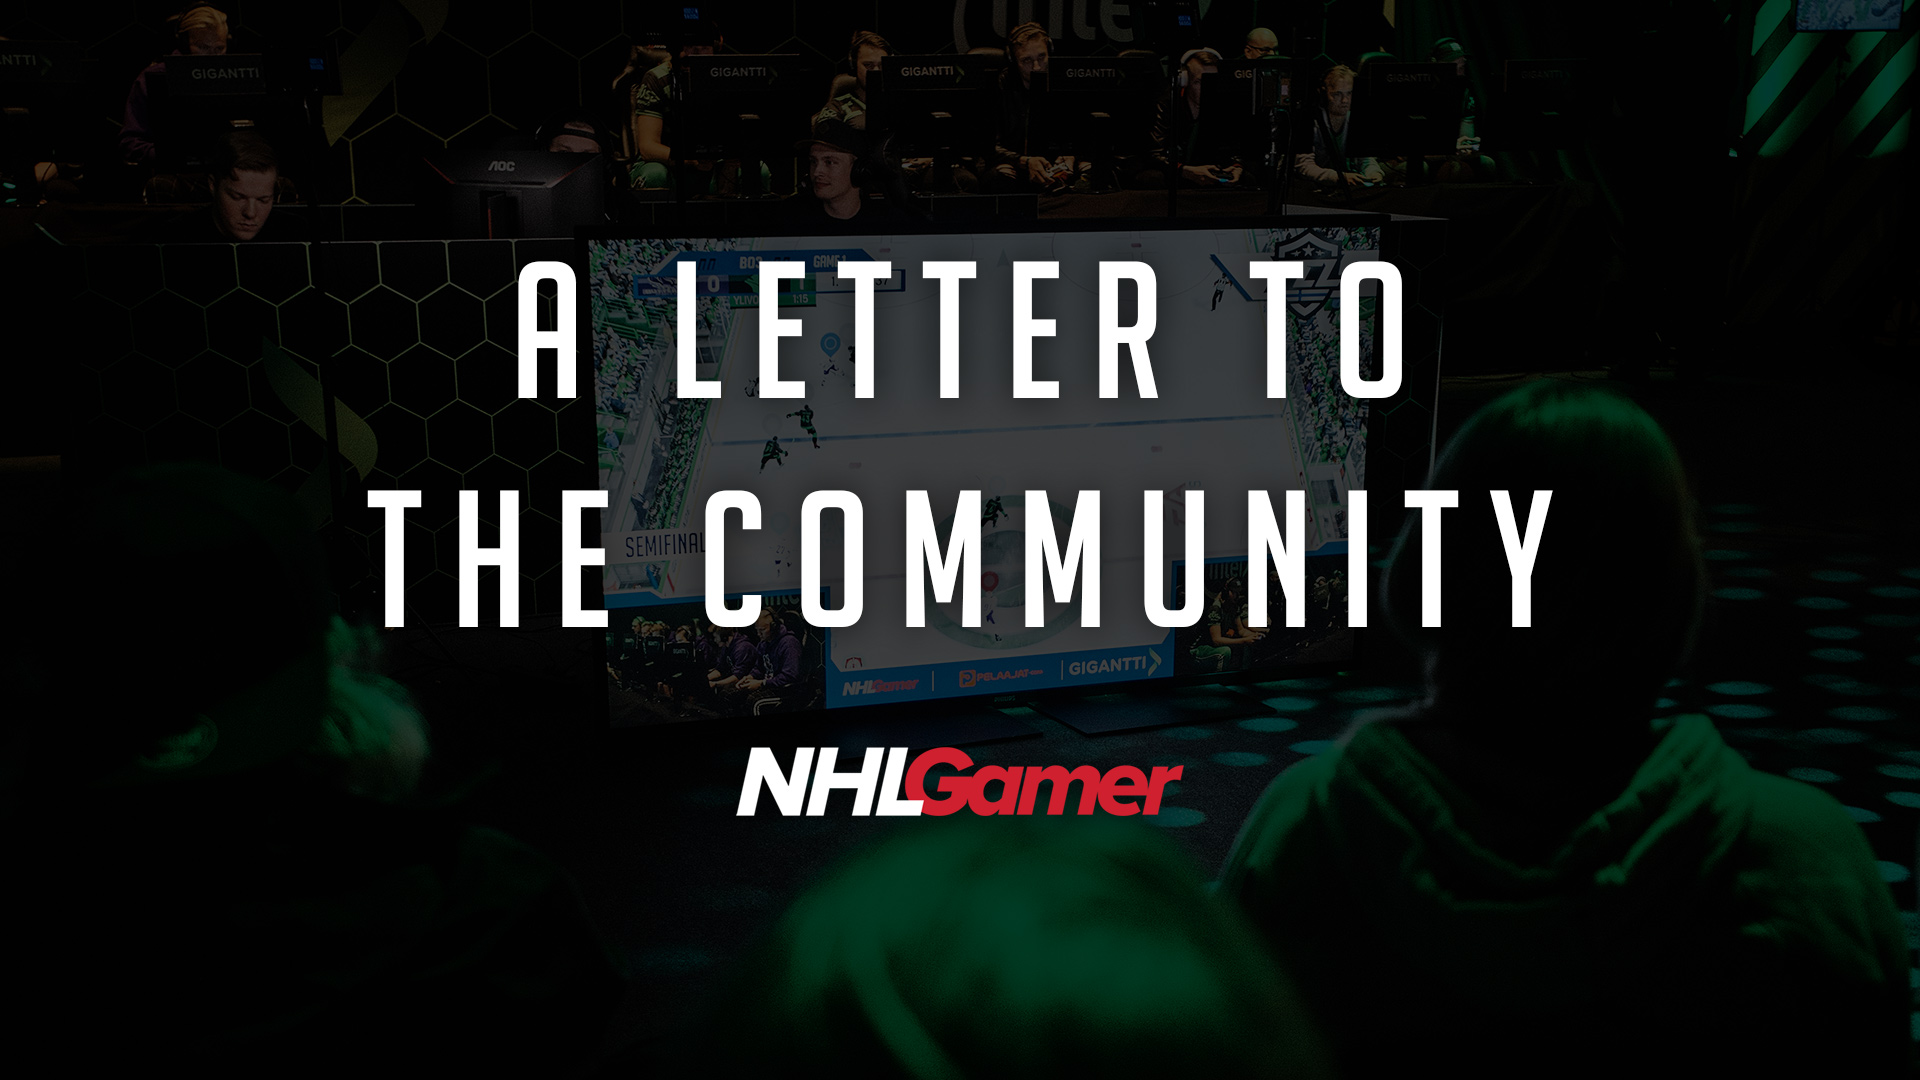 A_Letter_To_The_Community.jpg